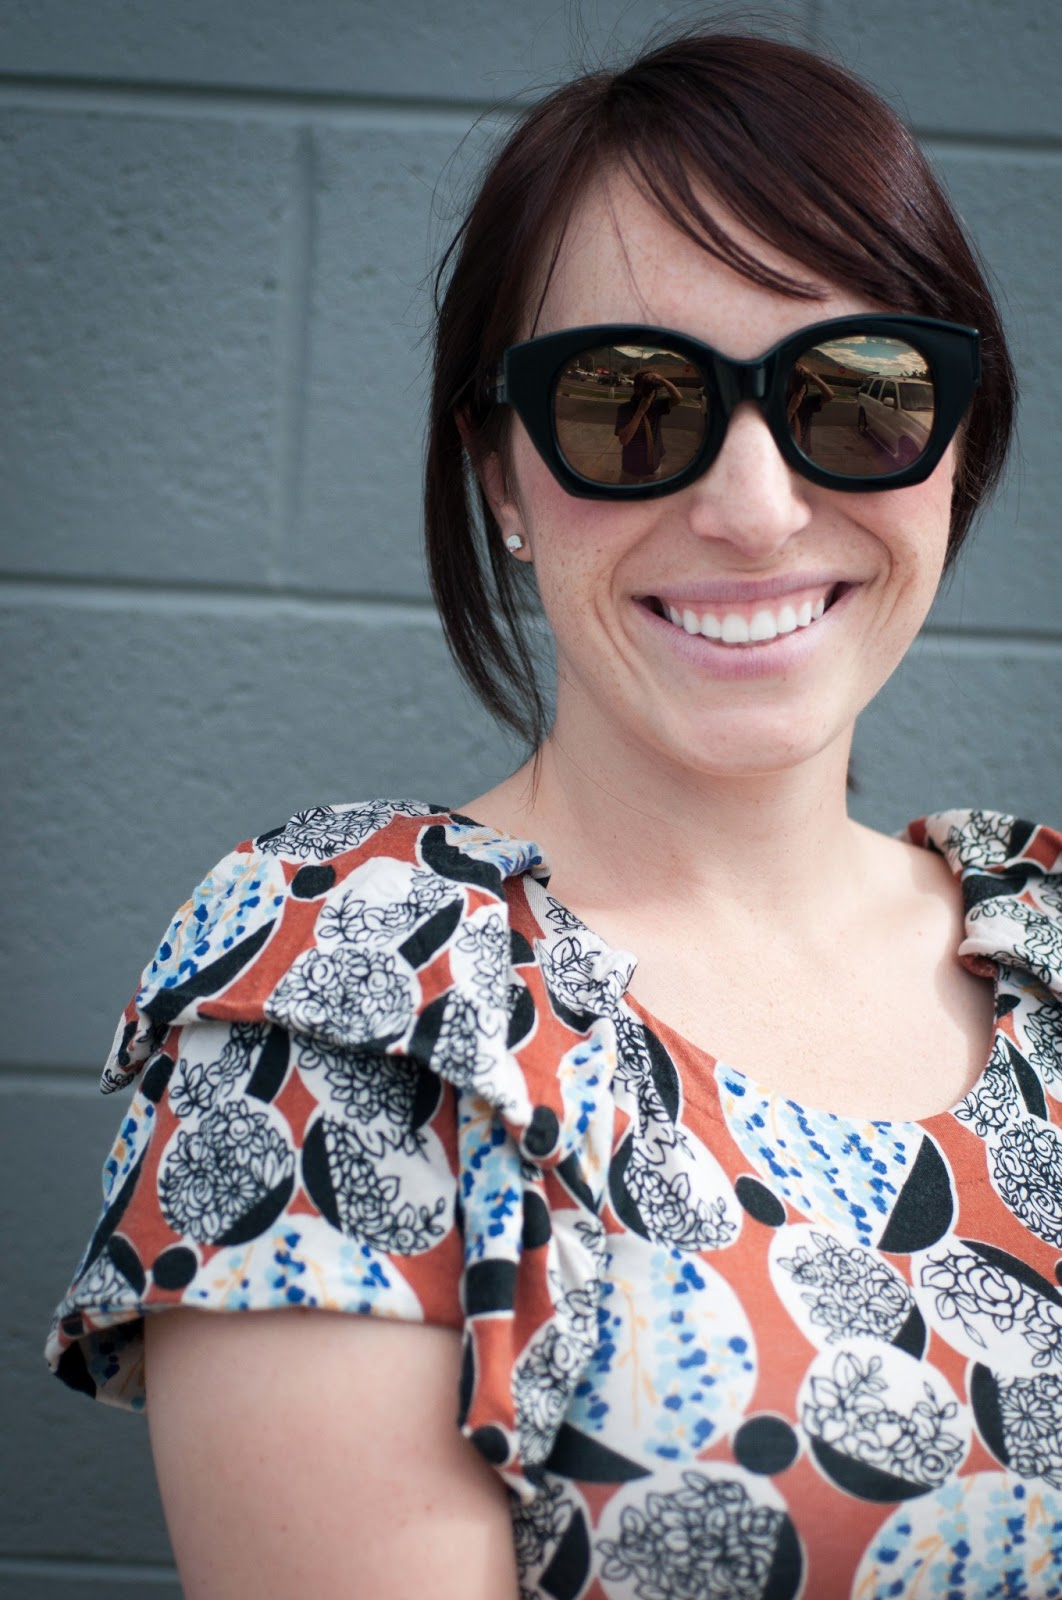 fashion blog, style blog, anthropologie, ootd, karen walker, karen walker sunglasses, deletta, karen walker soul club